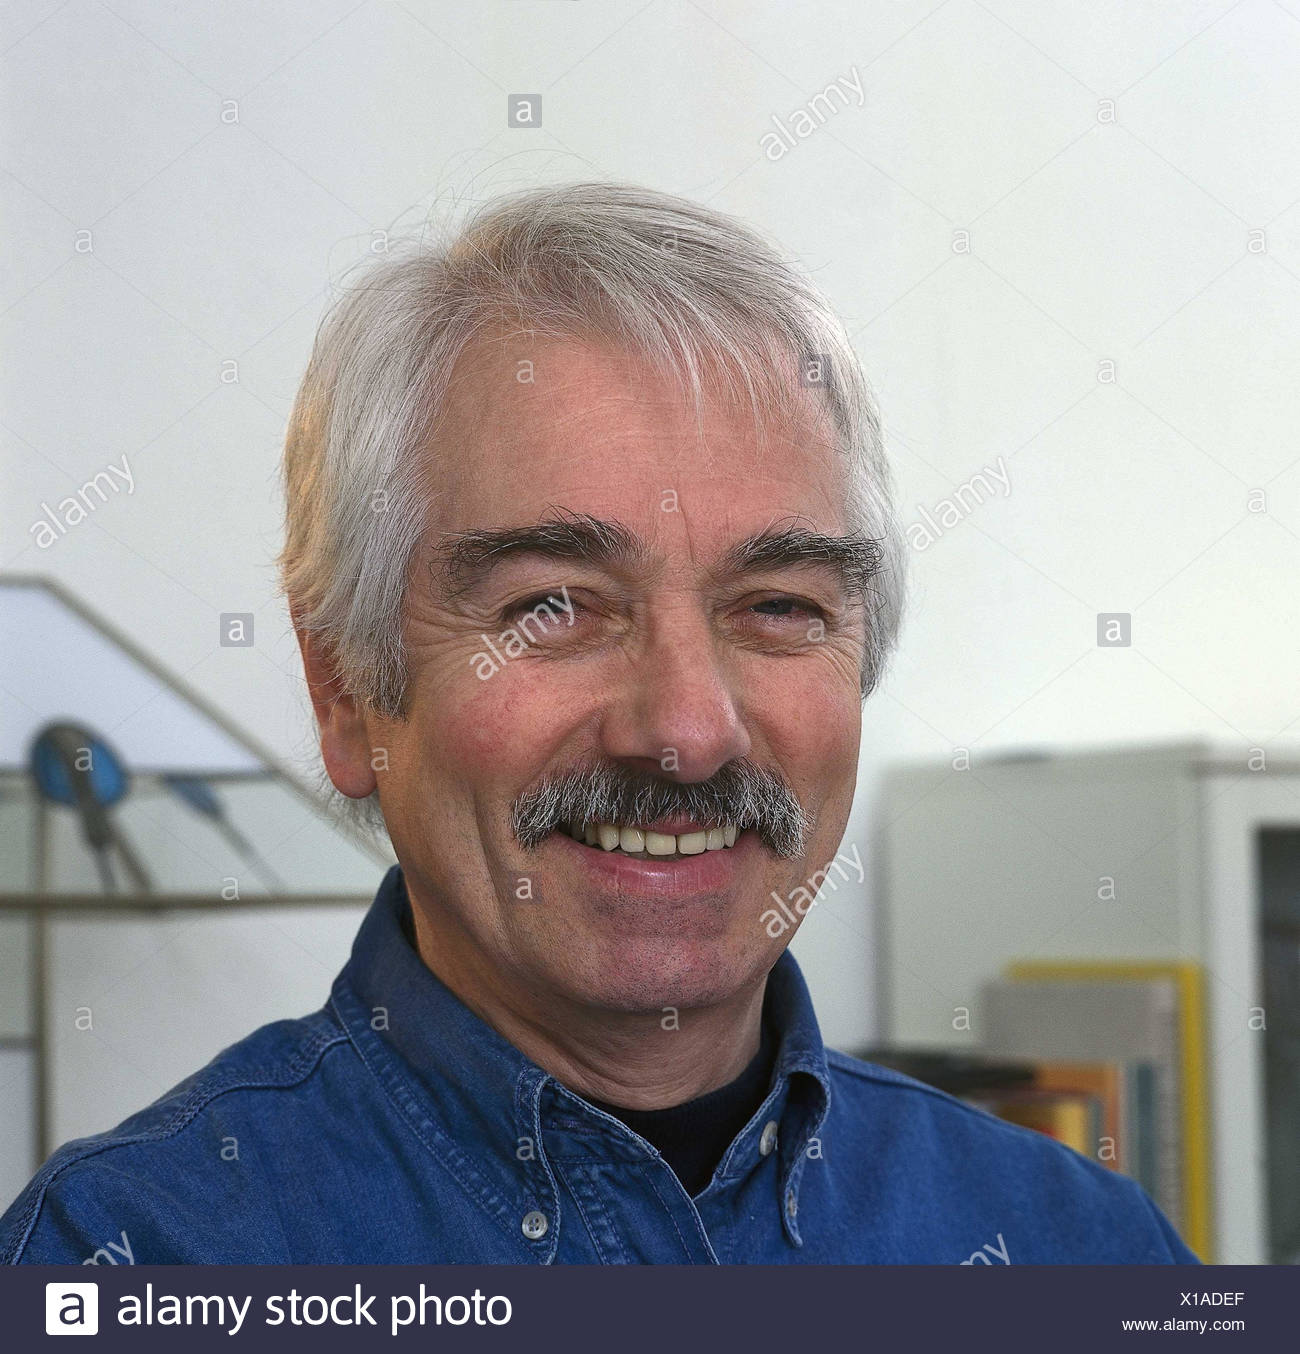 Man, smile, happy, grey-haired, moustache, portrait, inside, man's portrait, middle old person, view camera, happily - Stock Image